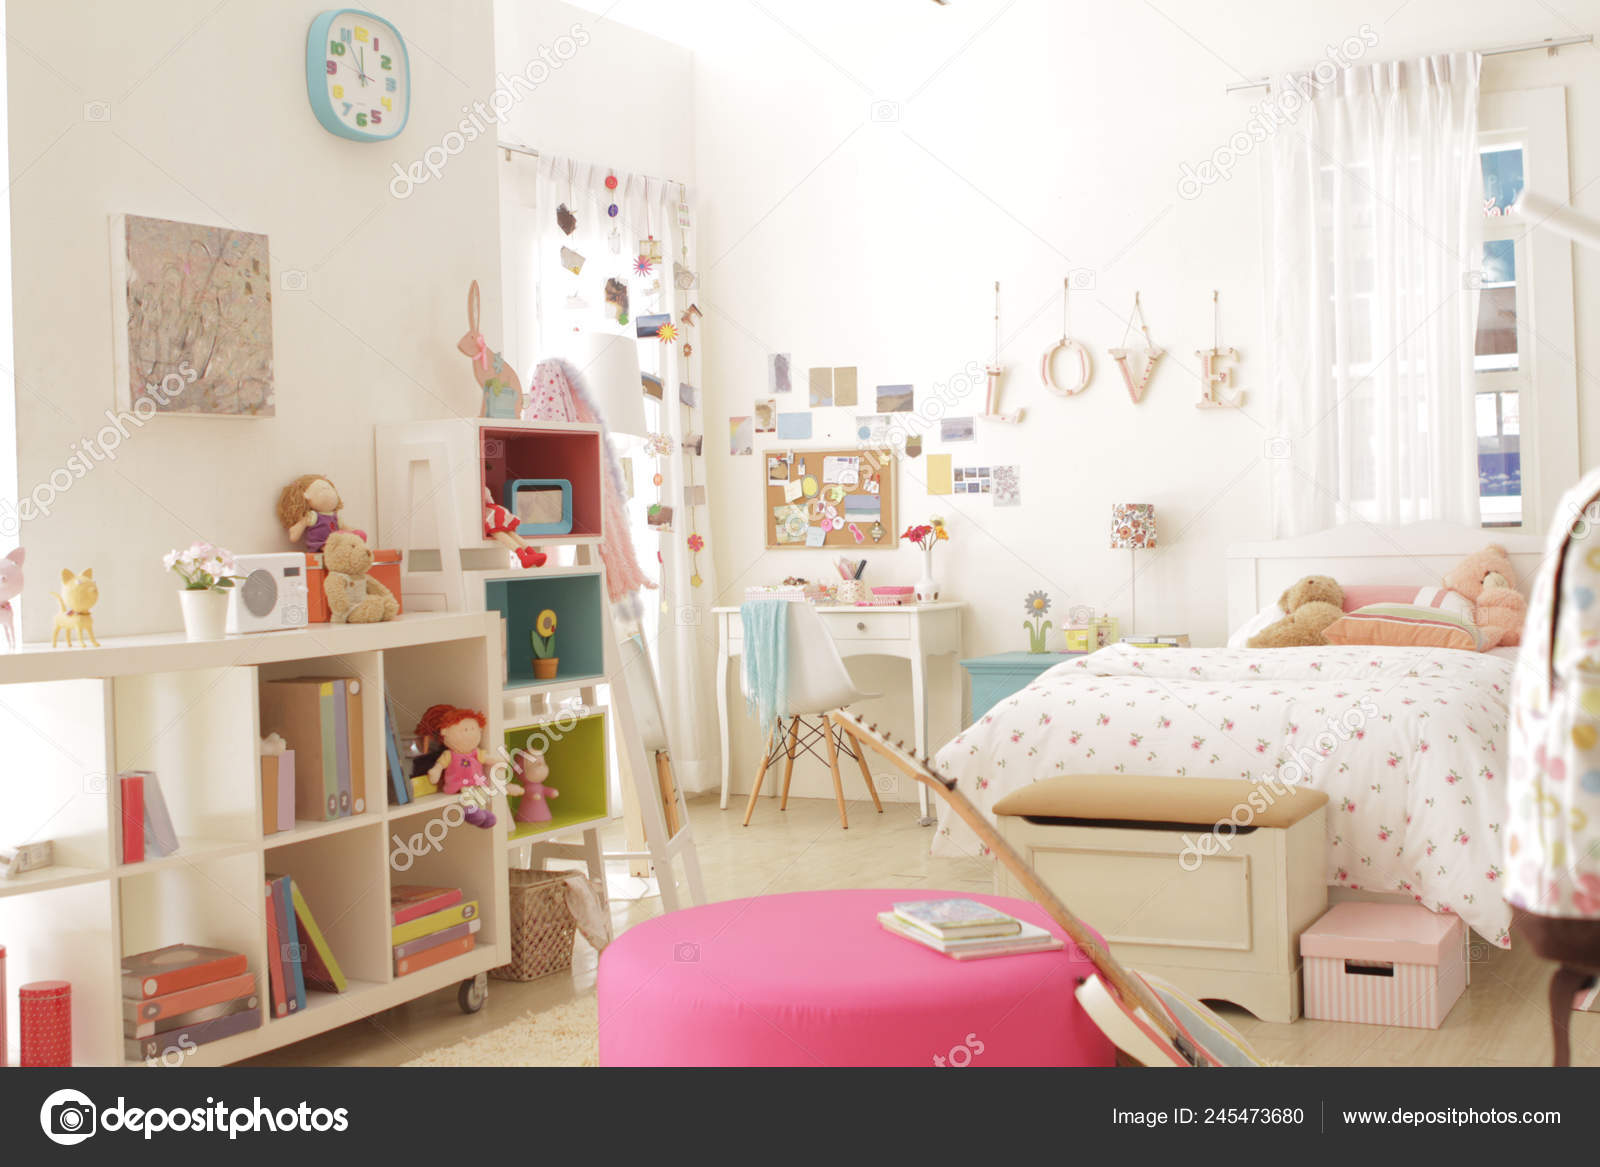 Lot Pastel Color Things Decorated Cute Teen Girl Bedroom Stock Photo Image By C Siva Ontherock 245473680